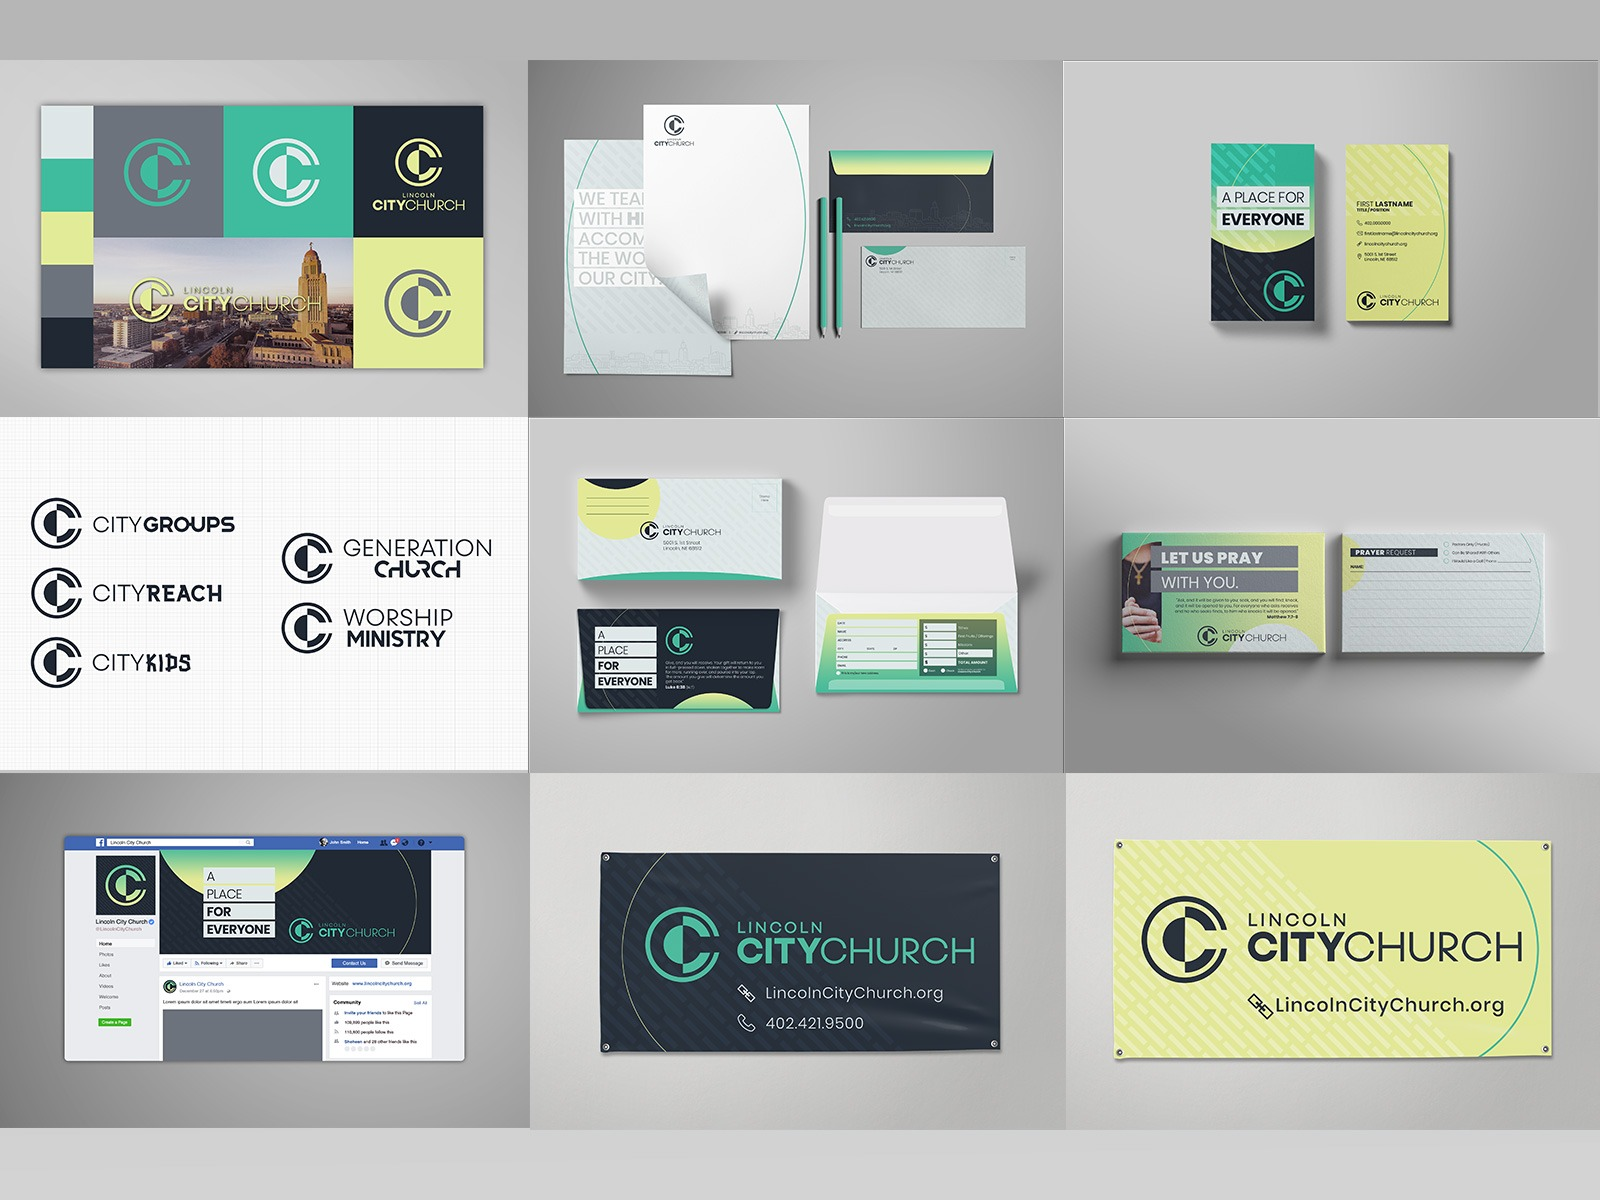 best church logo and church branding identity system nondenominational church